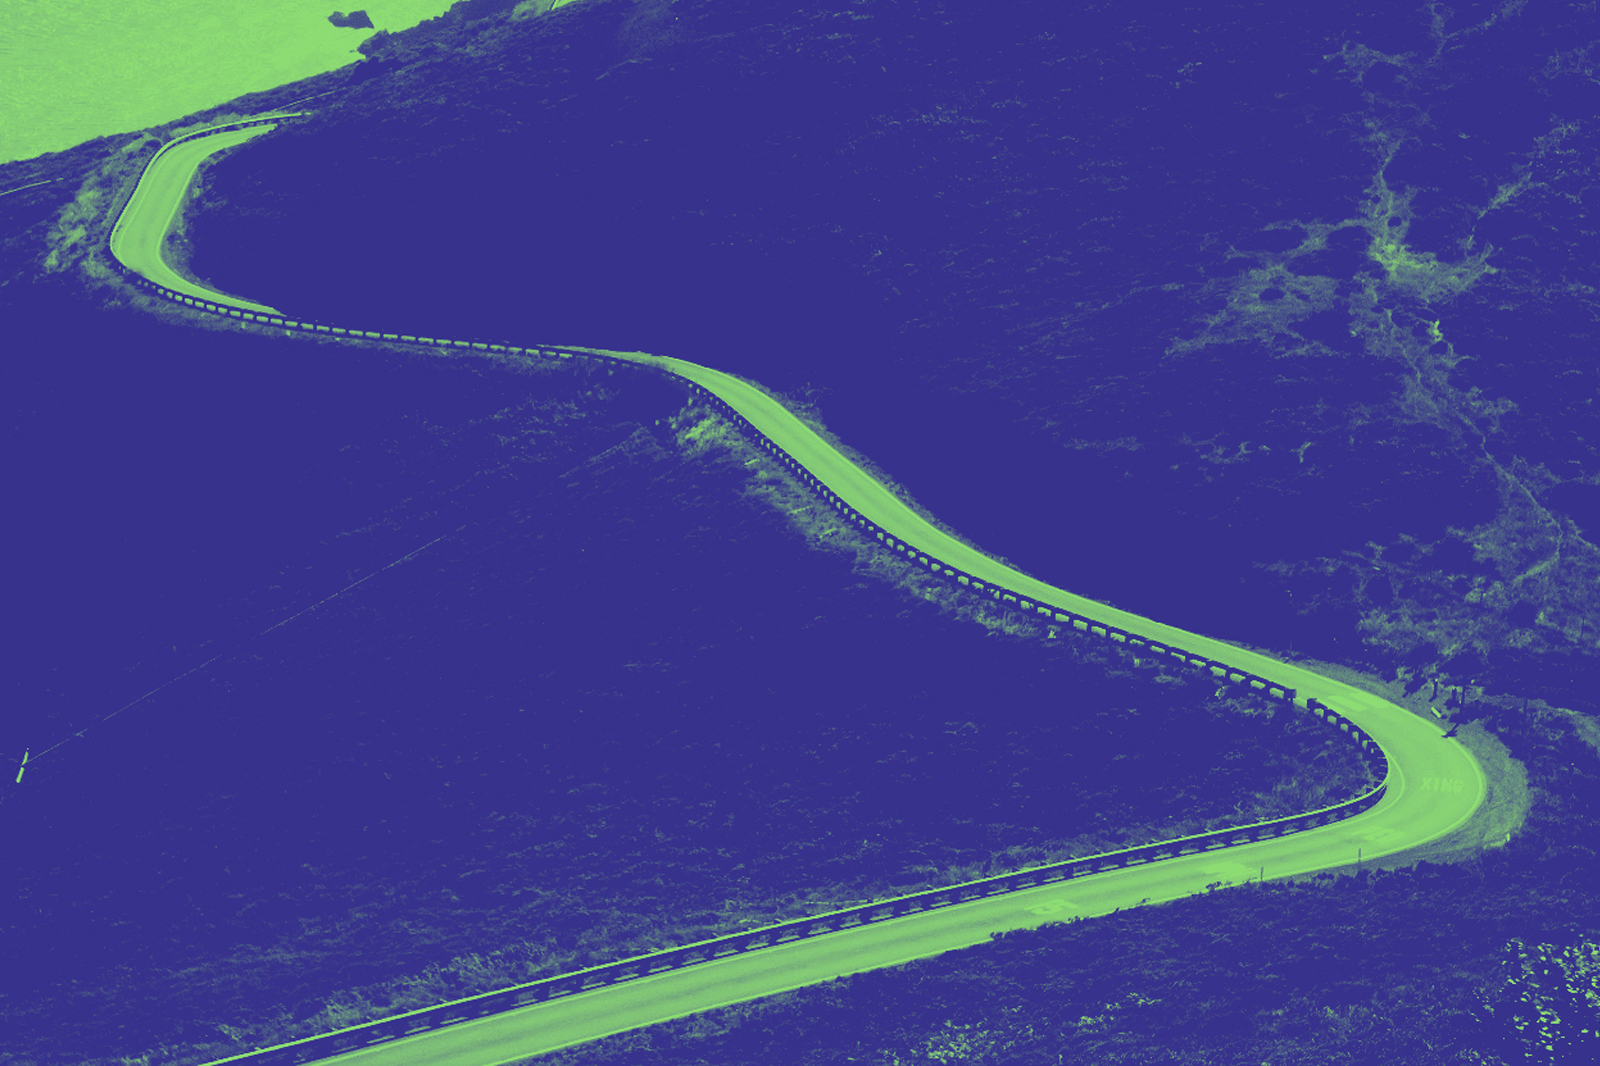 A photograph of a winding road cutting across hills, colourised in green and blue